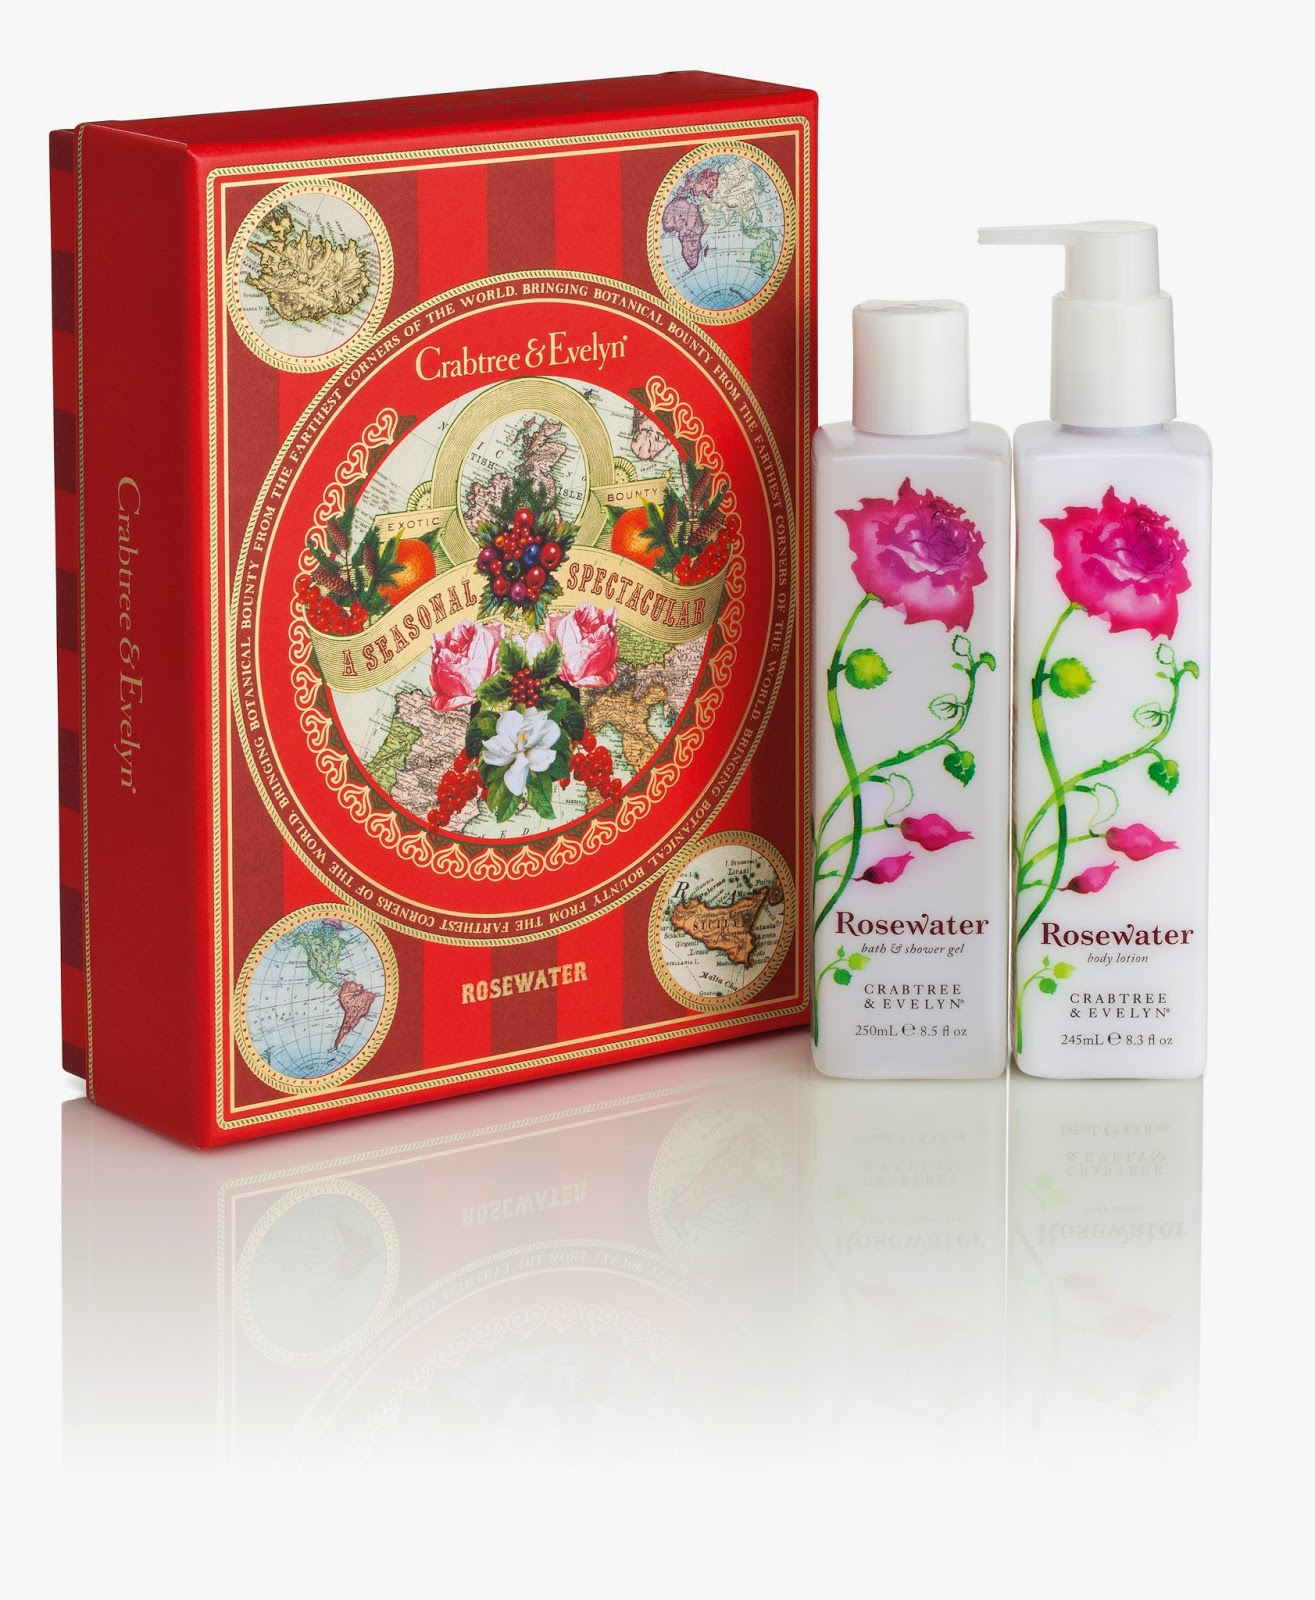 Crabtree & Evelyn Lotion and Gel Duos Set Giveaway Ends 11/19  #HolidayGiftGuide via www.productreviewmom.com